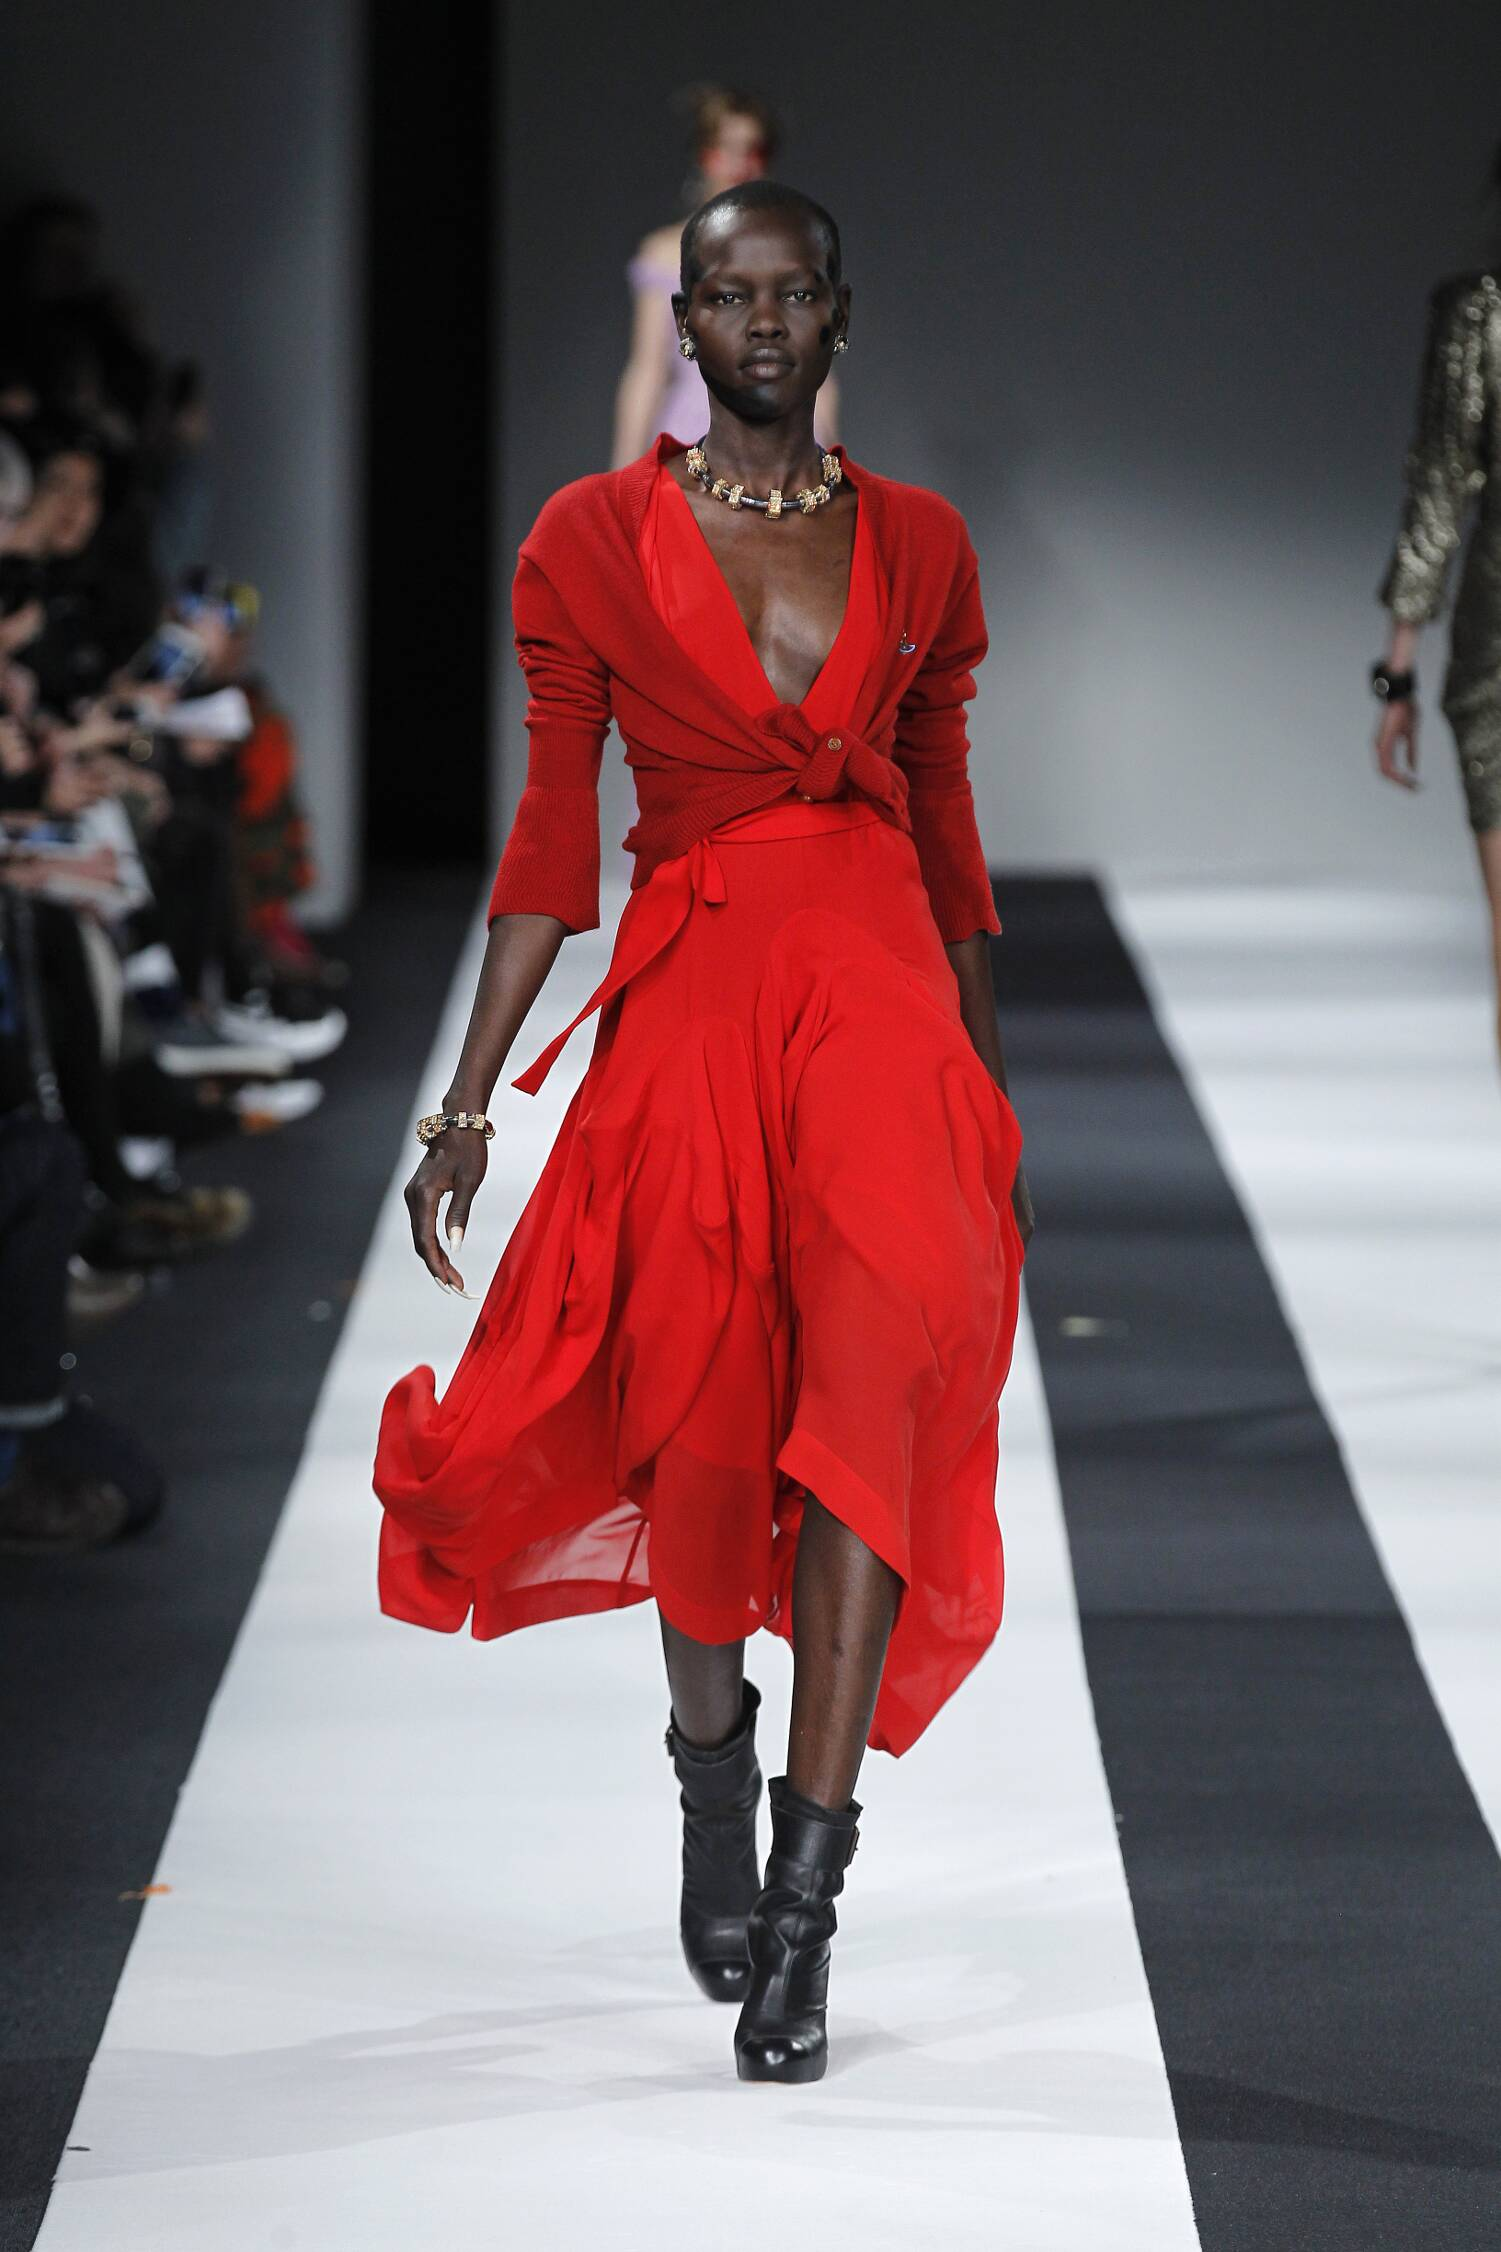 Fashion Trends: VIVIENNE WESTWOOD RED LABEL FALL WINTER 2015-16 WOMEN'S